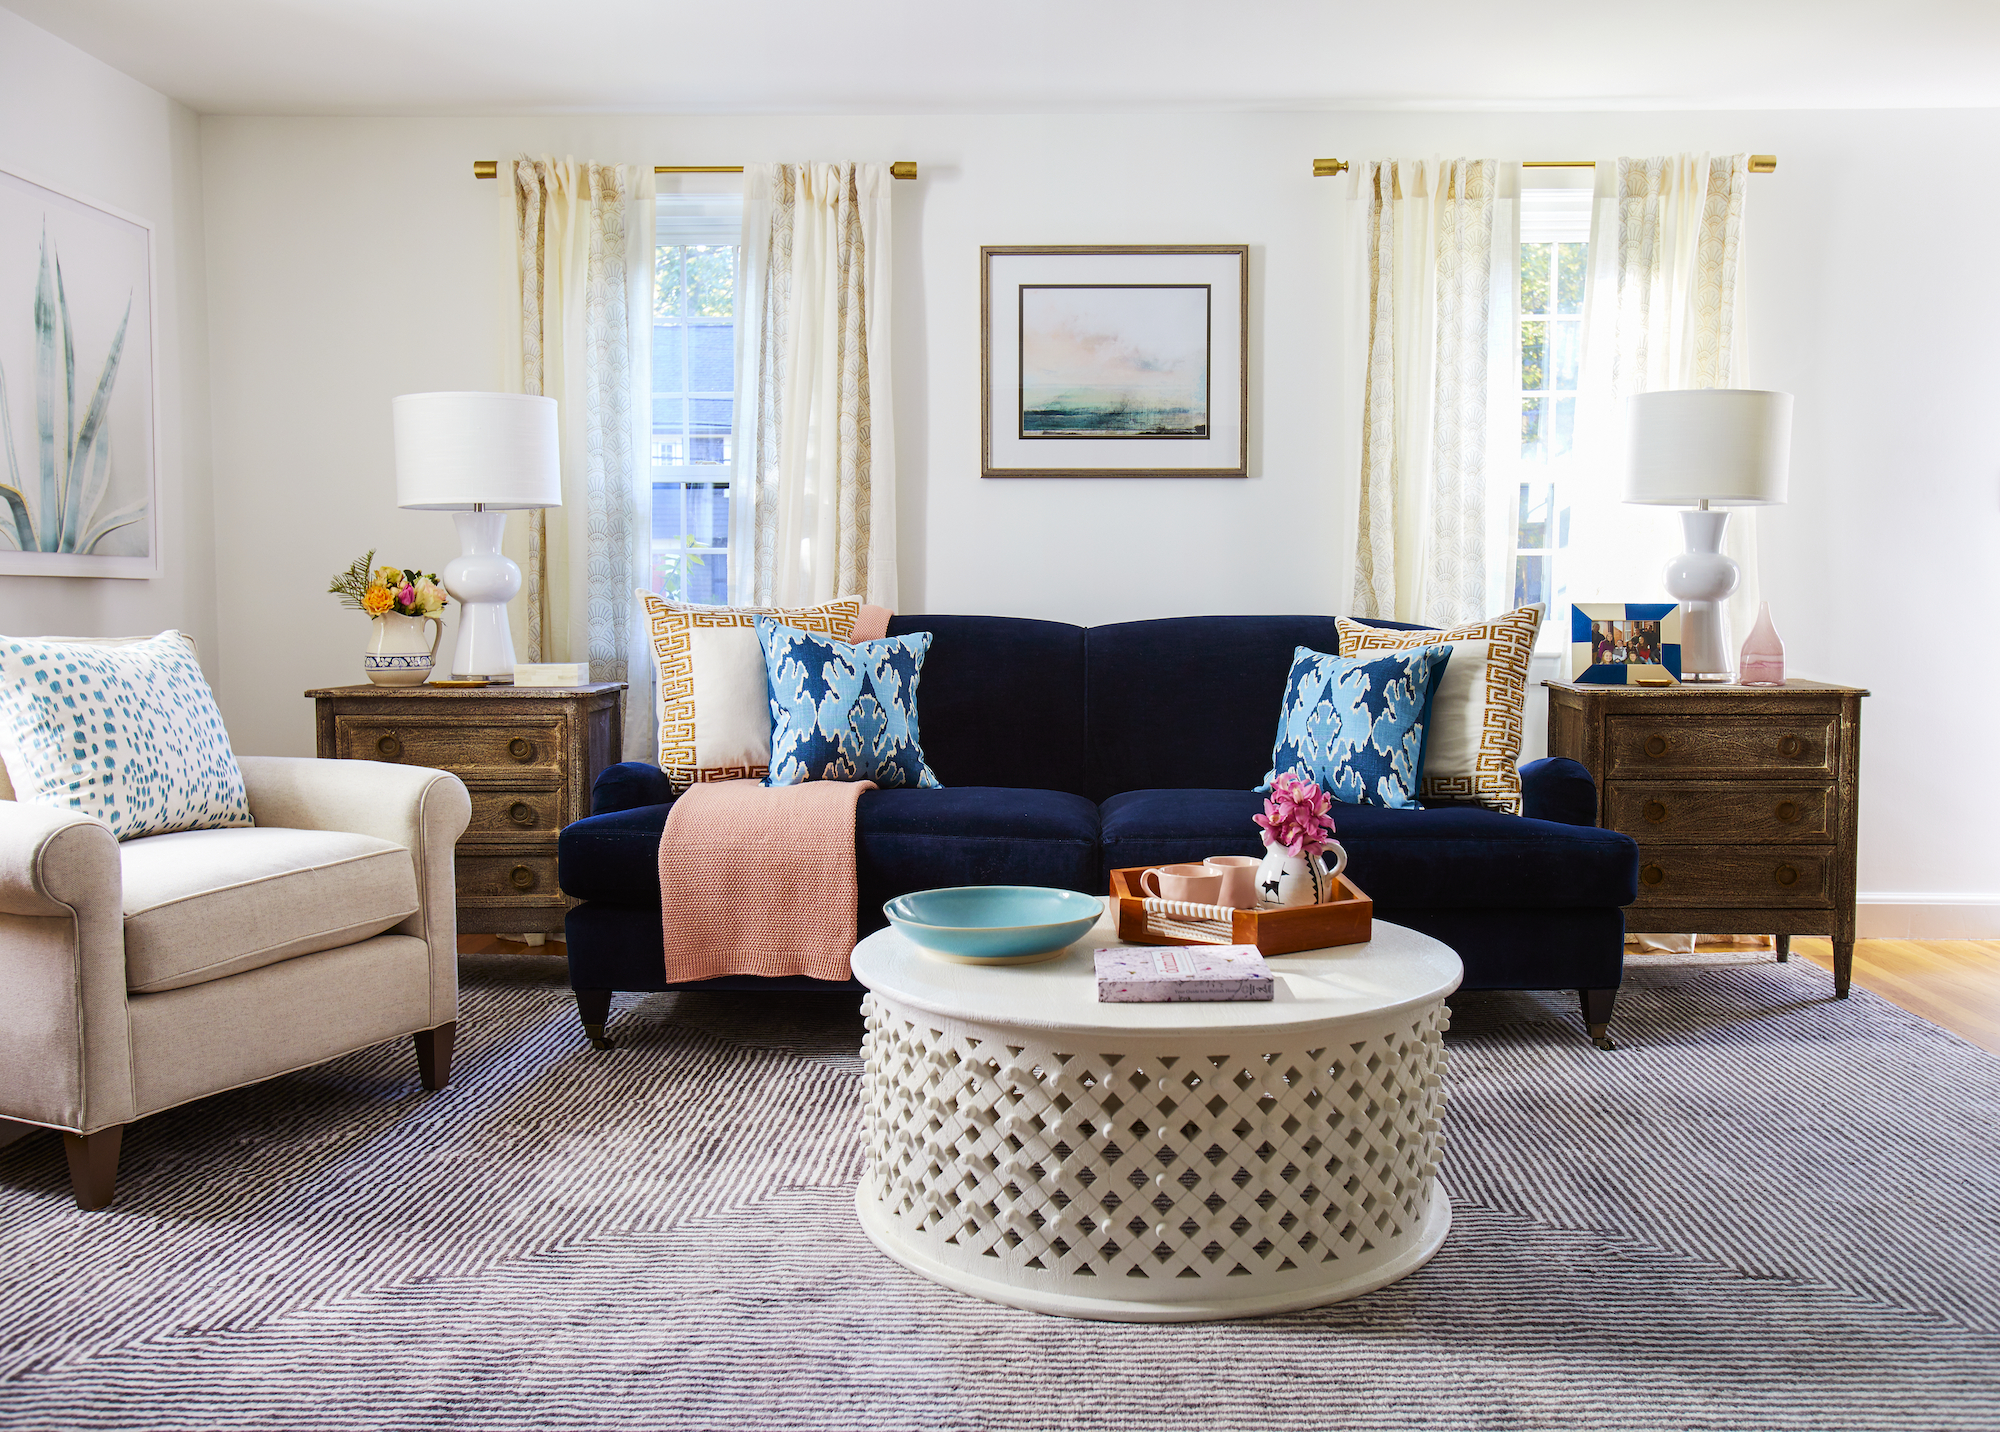 15 Ideas How To Upgrade And Improve Small Living Room Set Ups Simphome